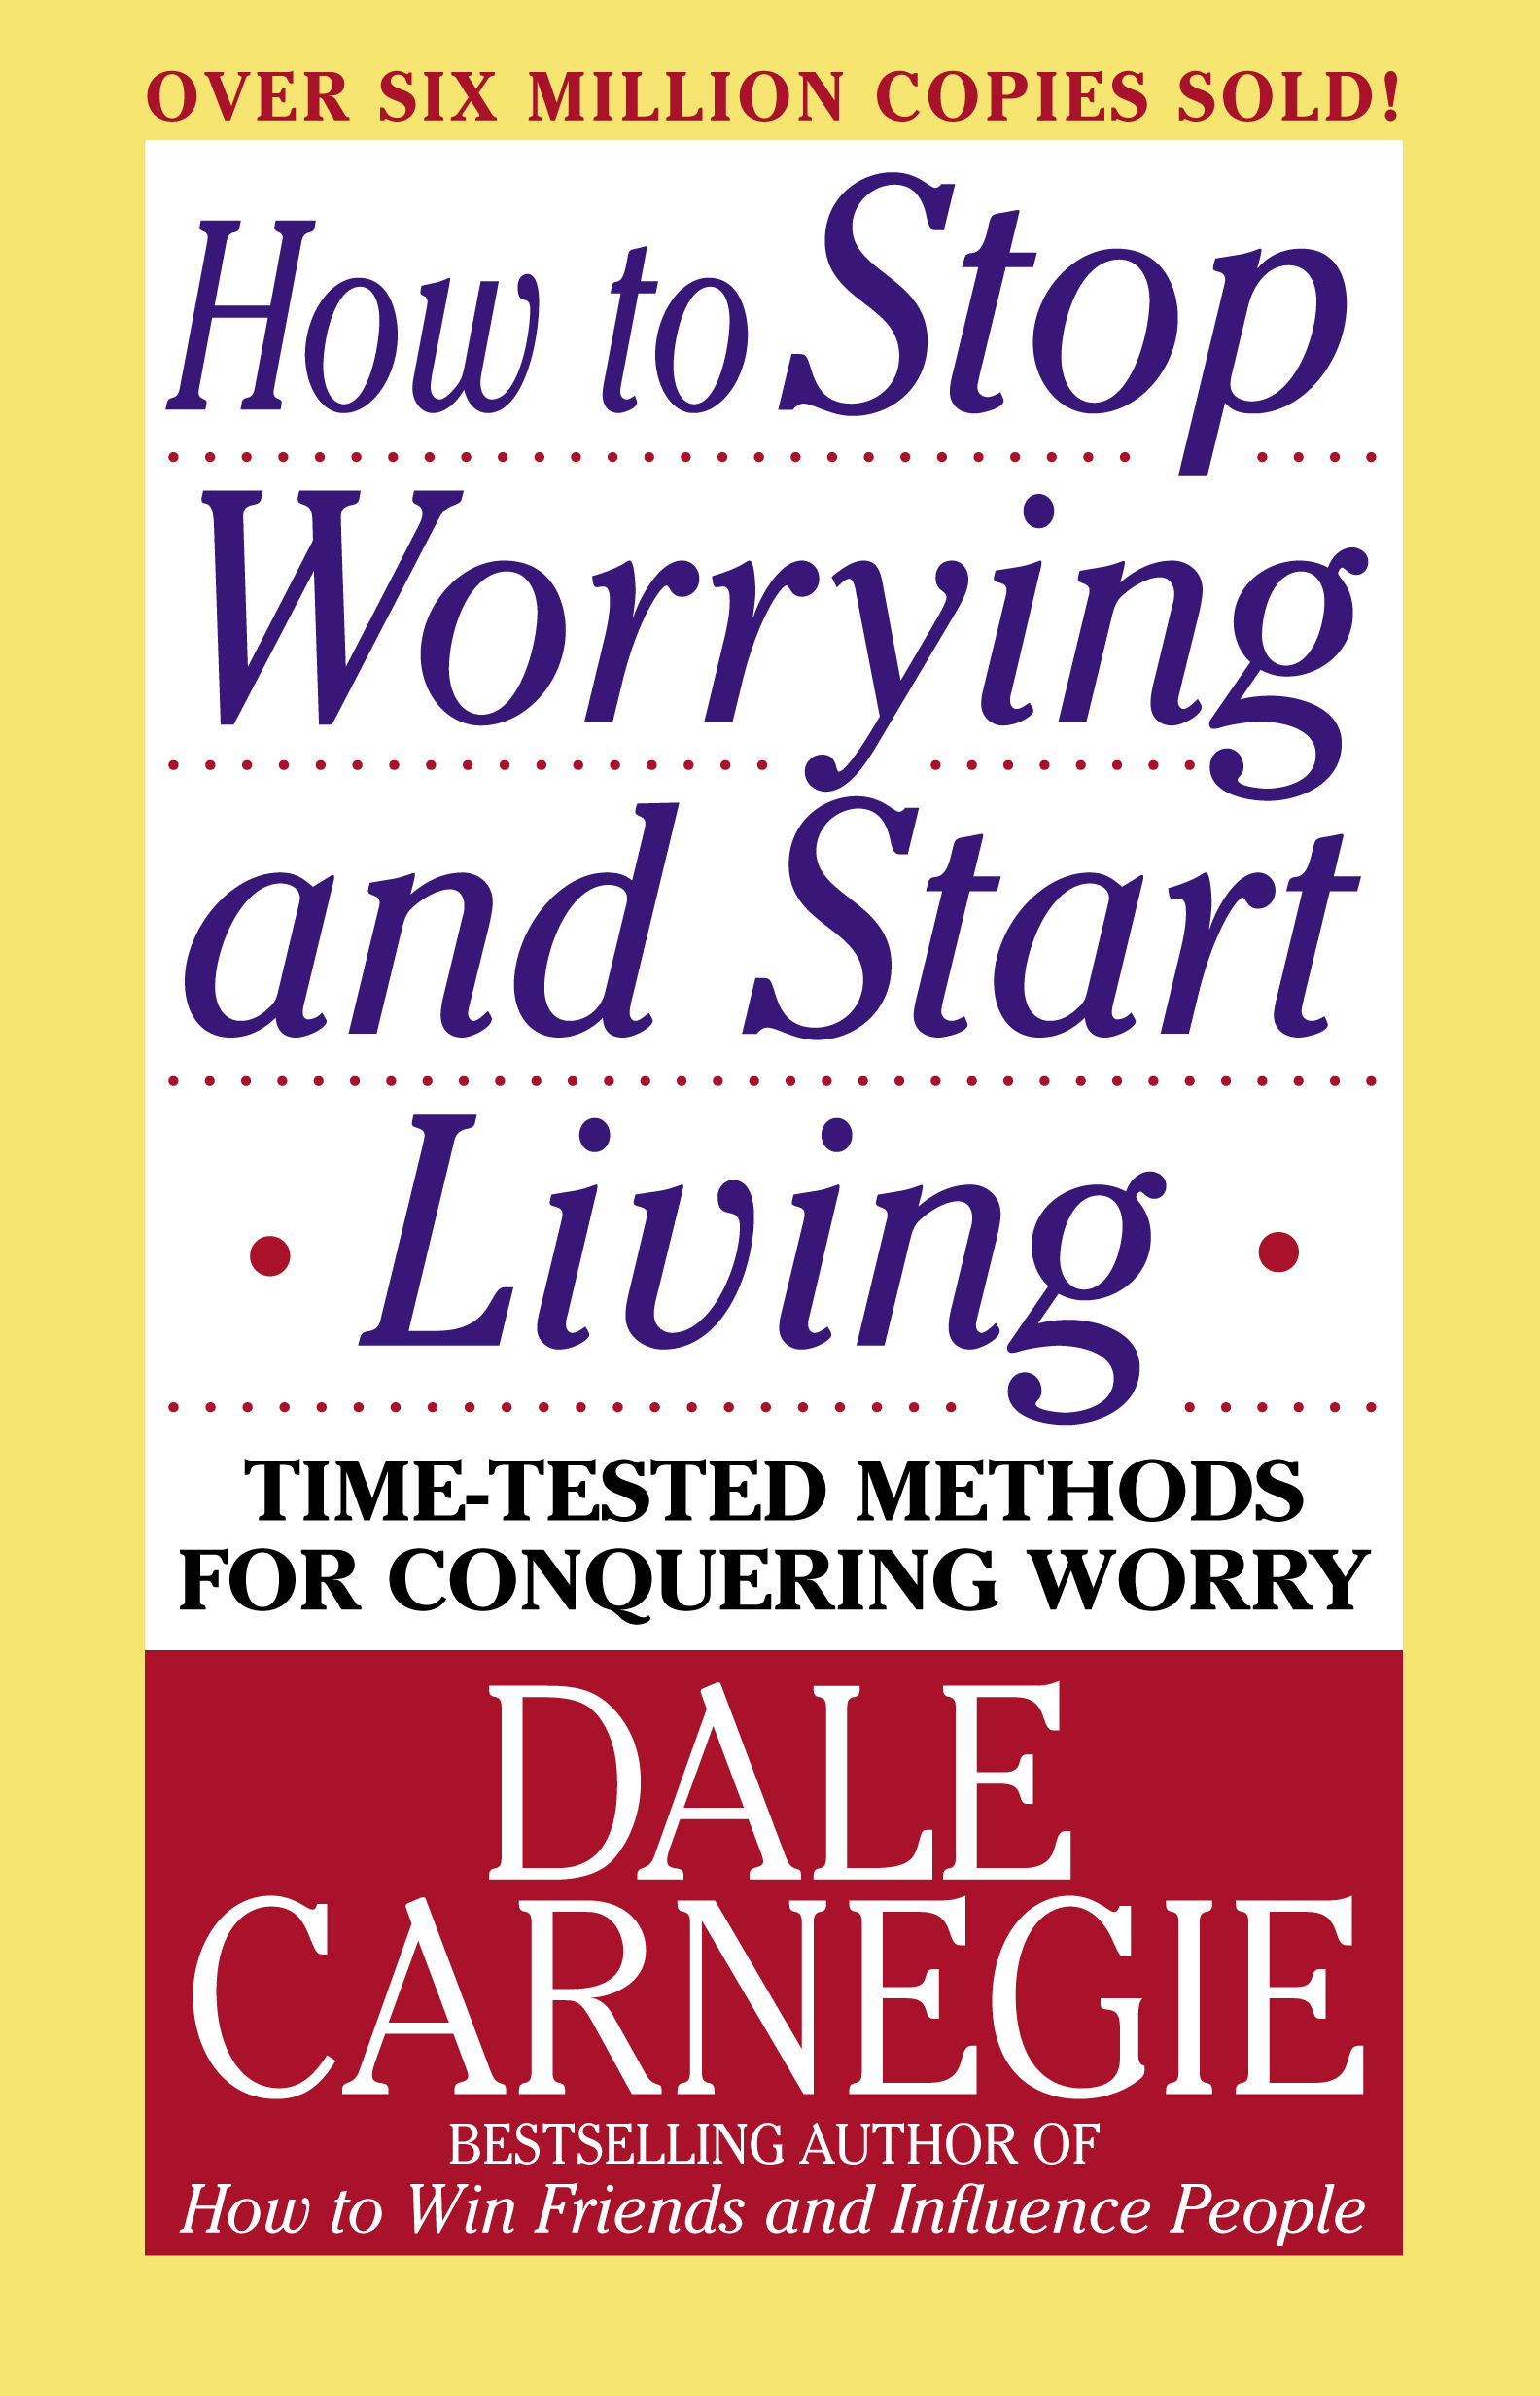 How to Stop Worrying and Start Living(by Dale Carnegie)